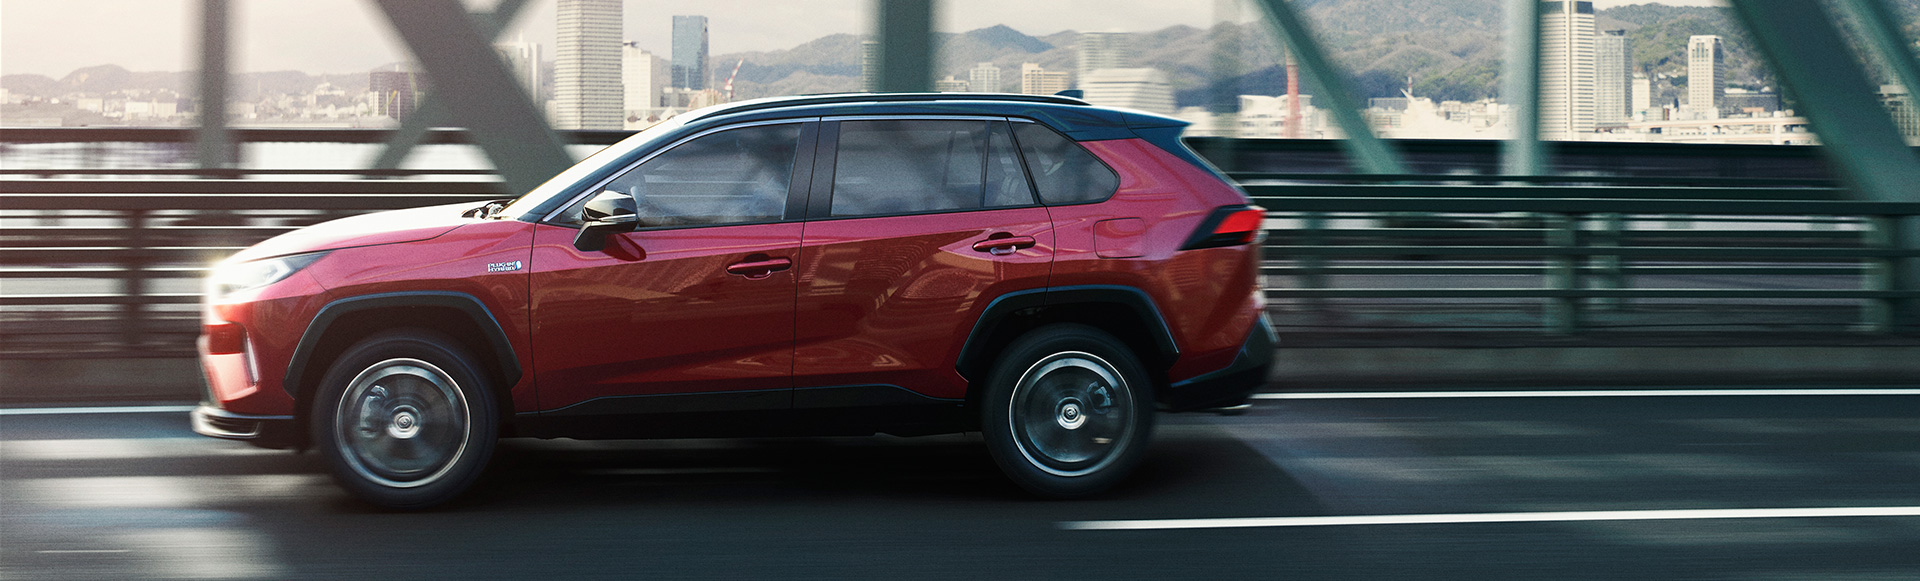 Toyota Launches New Model RAV4 PHEV